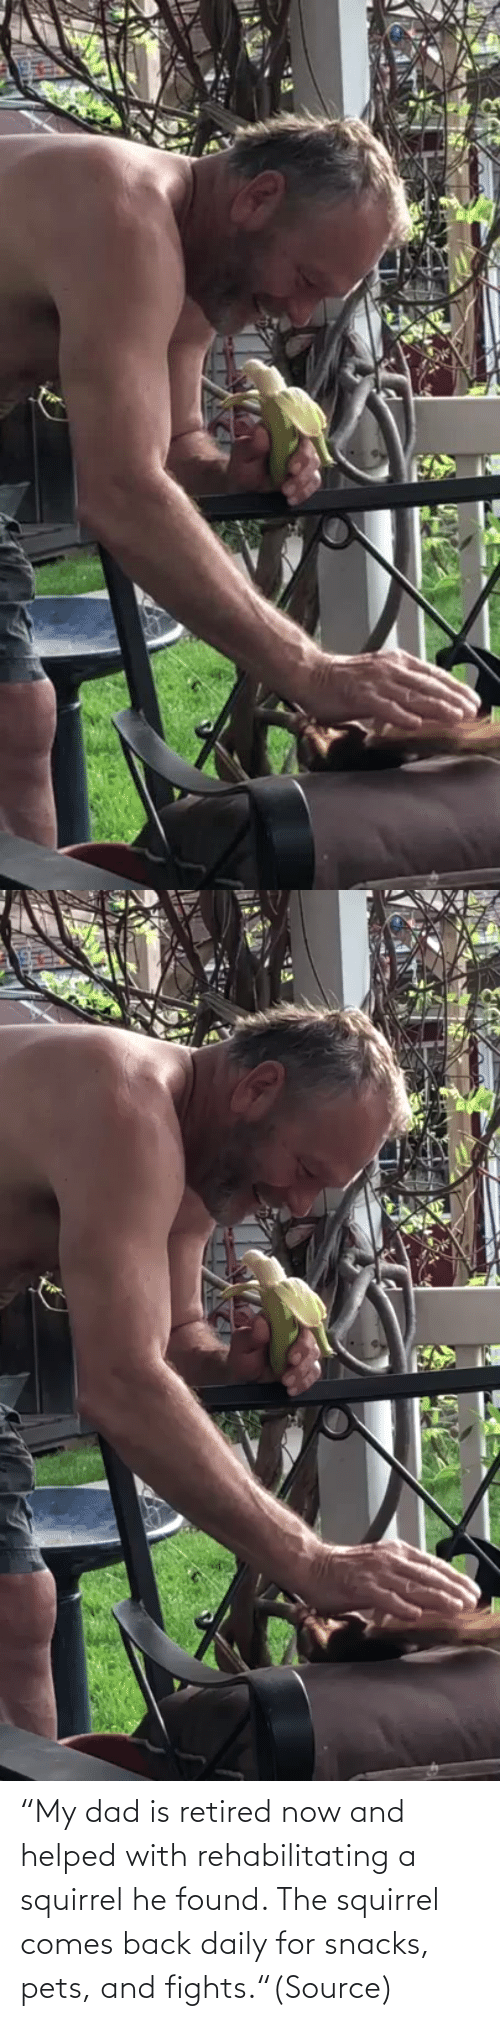 """Umblr: """"My dad is retired now and helped with rehabilitating a squirrel he found. The squirrel comes back daily for snacks, pets, and fights.""""(Source)"""